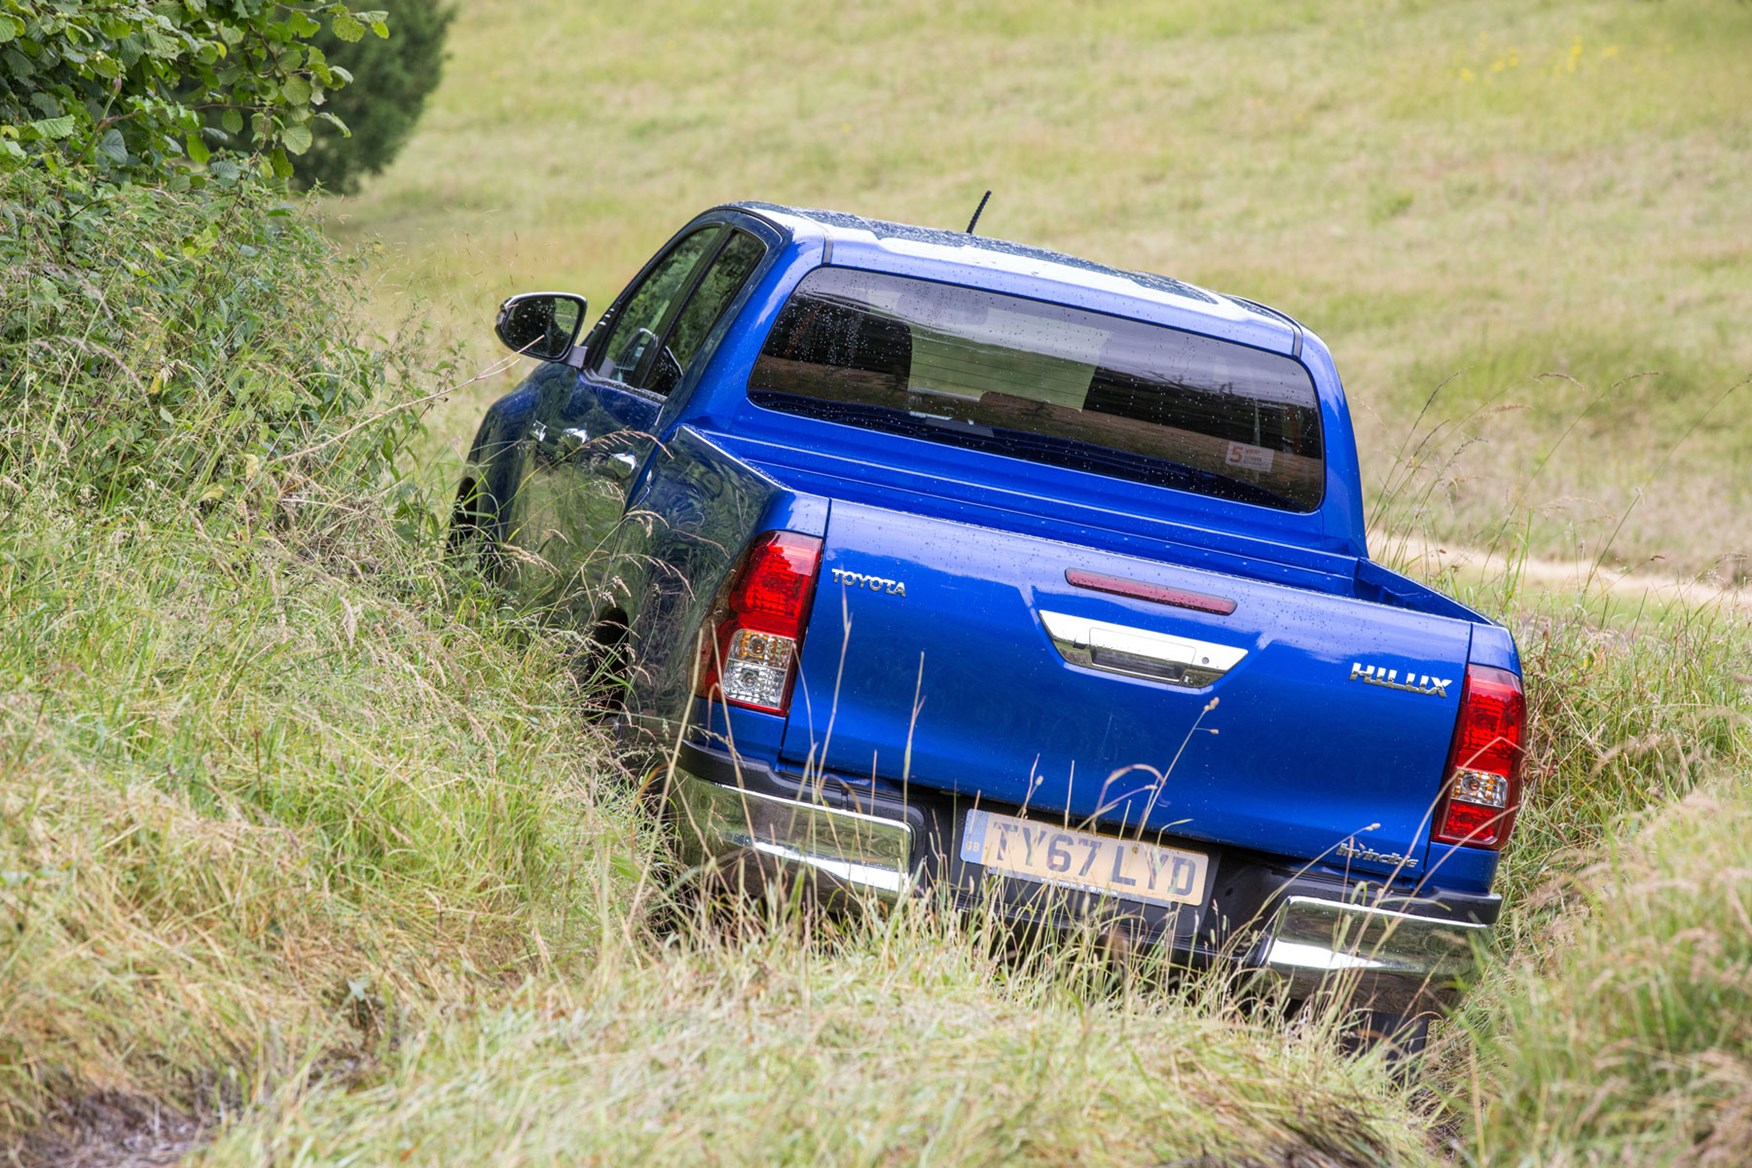 Toyota Hilux review - rear view, blue, driving off road